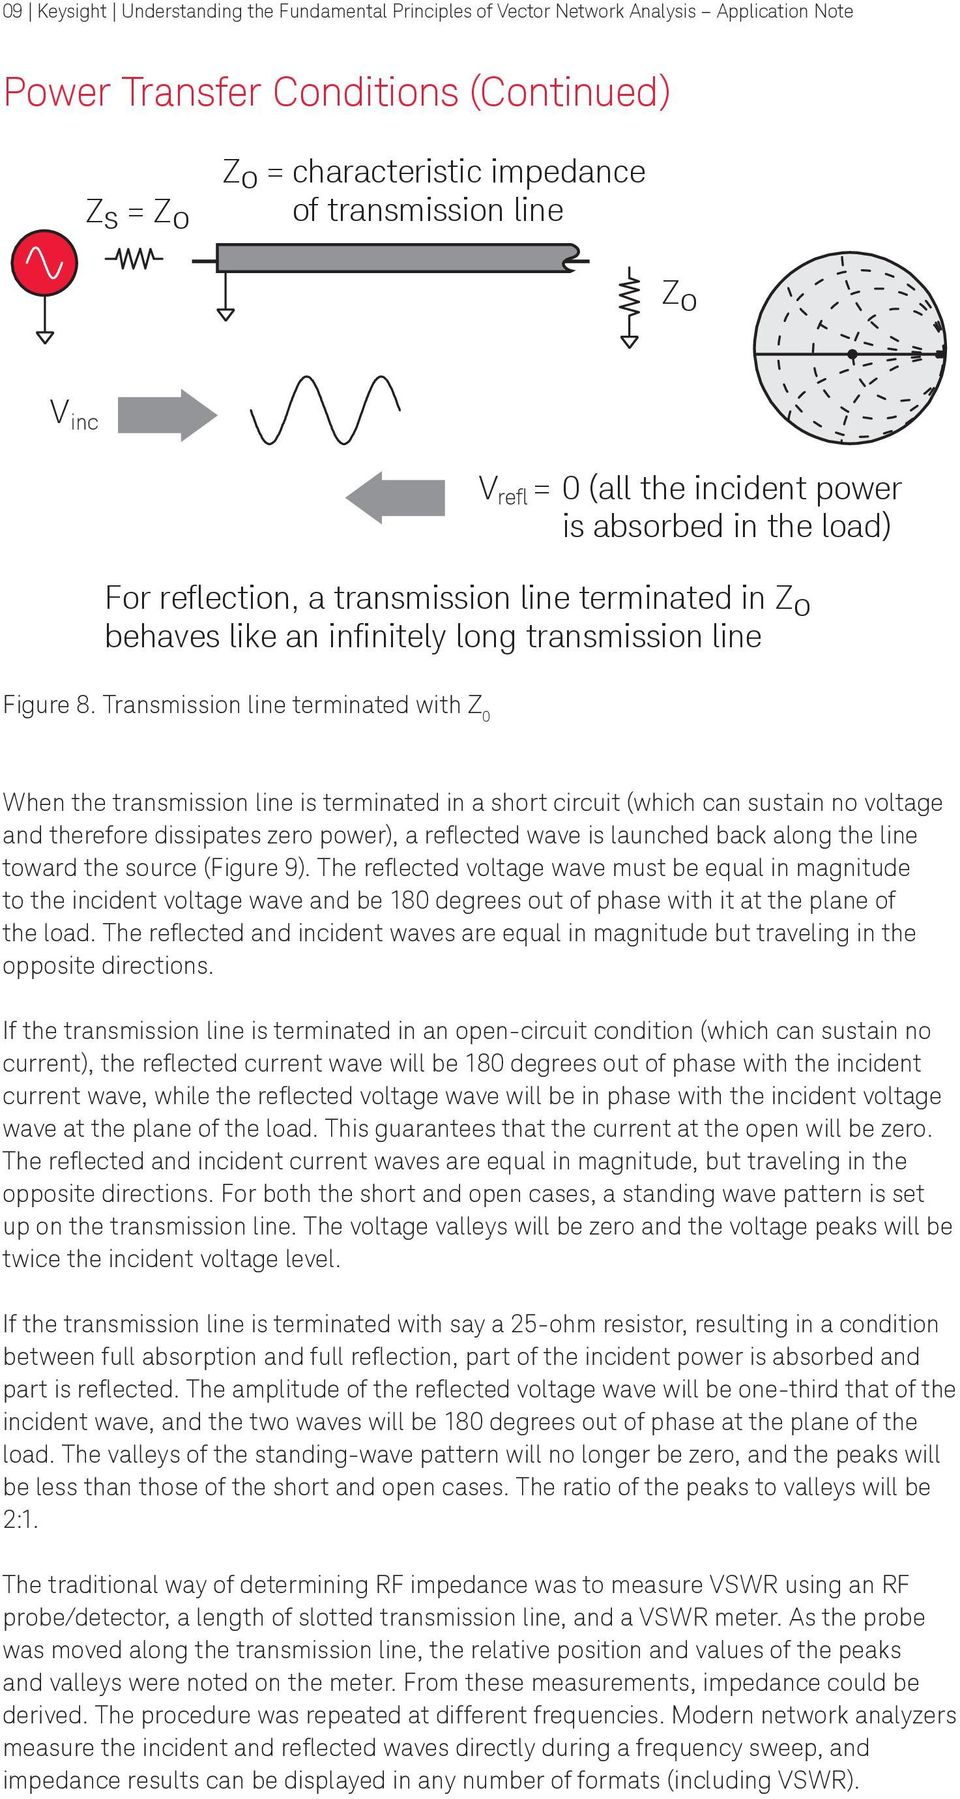 Transmission line terminated with Z 0 When the transmission line is terminated in a short circuit (which can sustain no voltage and therefore dissipates zero power), a reflected wave is launched back